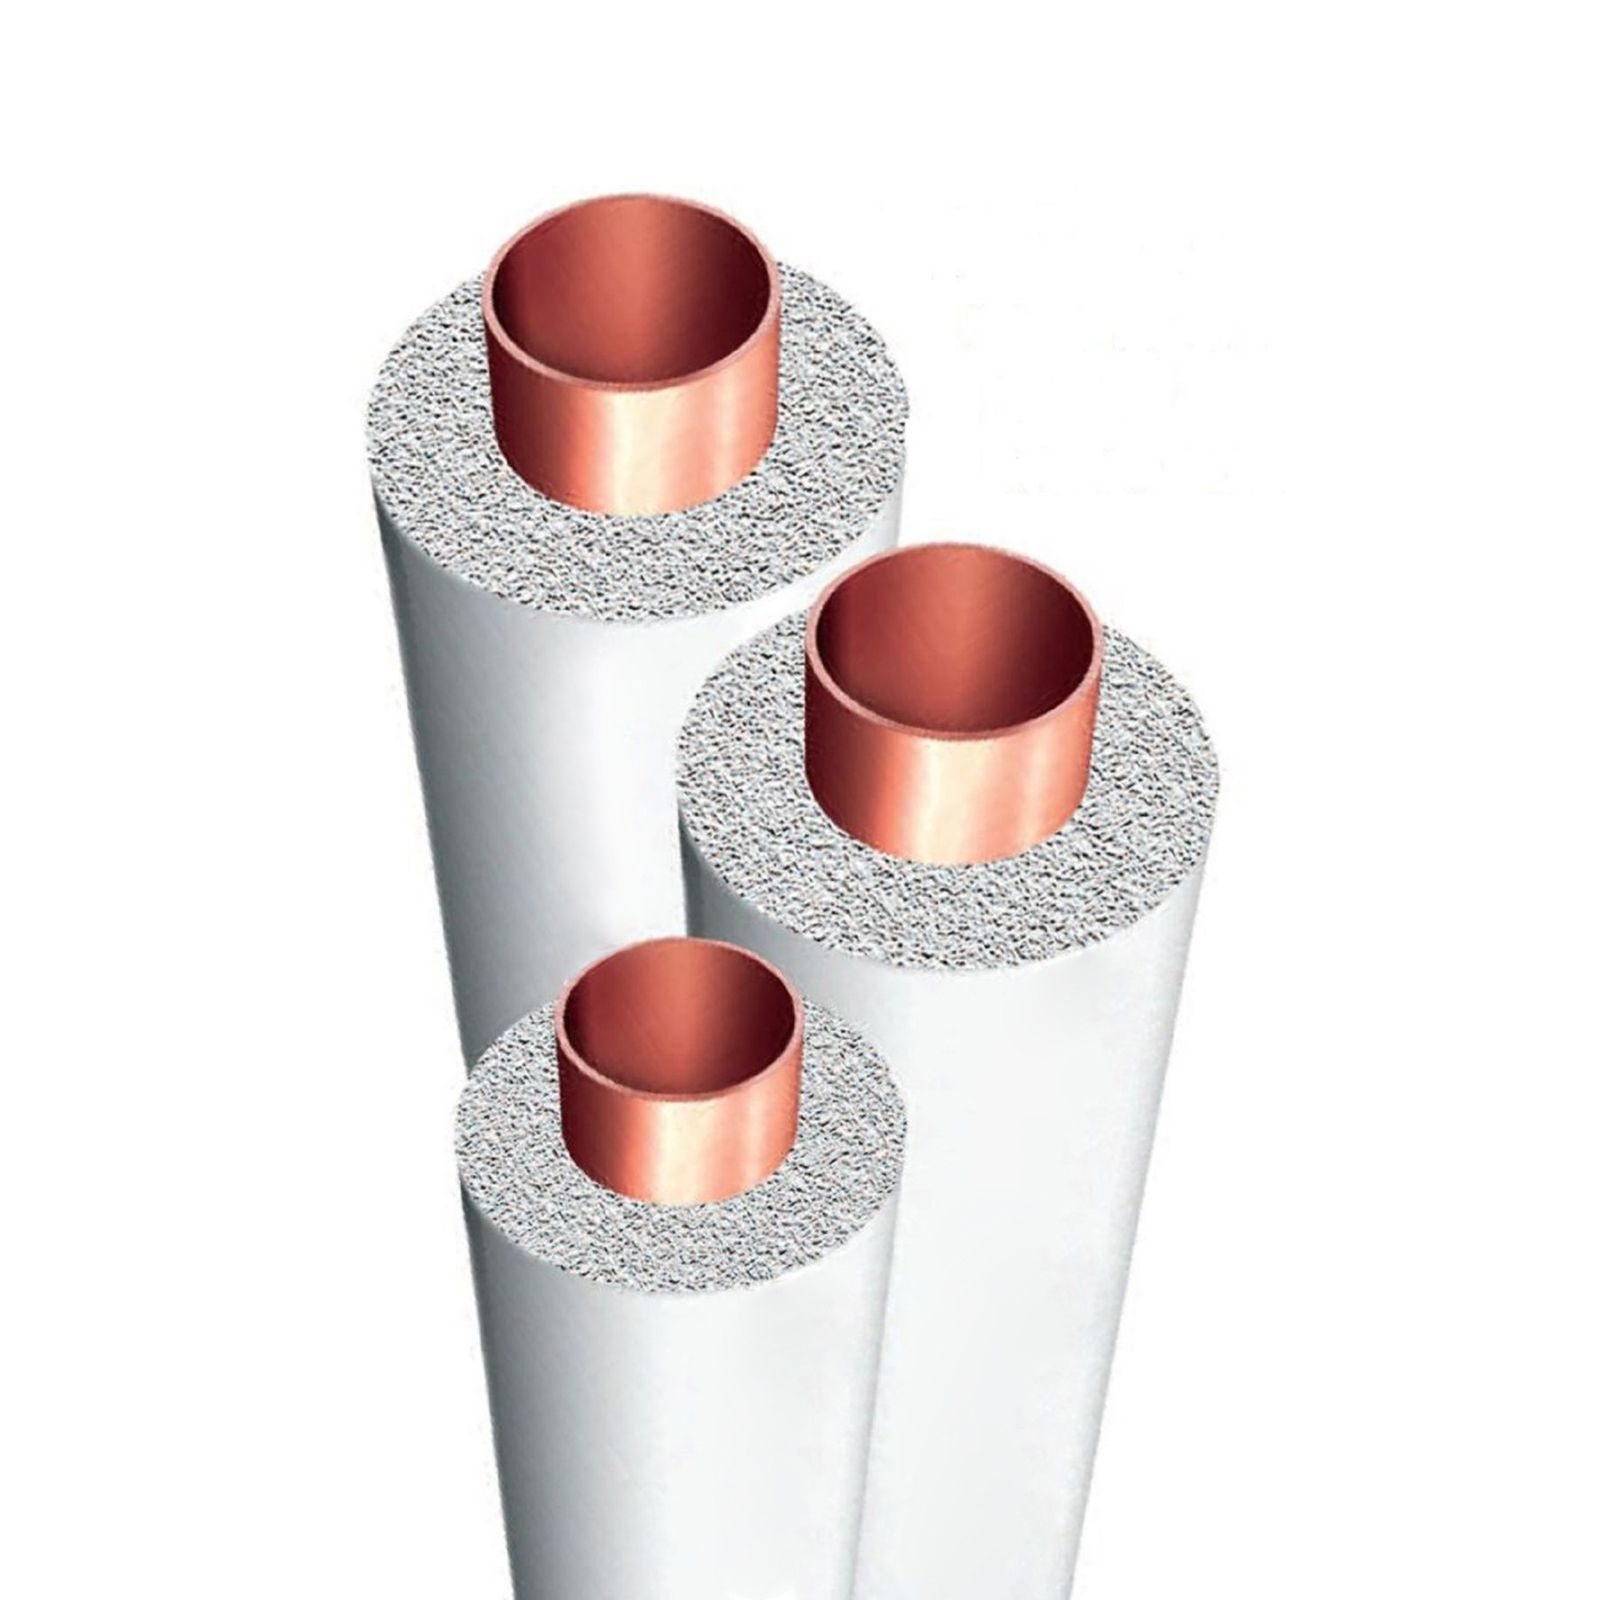 "Aeroflex PE-7812WH - SS Polyethylene Tubing Insulation, 7/8"" ID X 1/2"" Wall Thickness, White, Fits 7/8"" OD Copper Tubing"